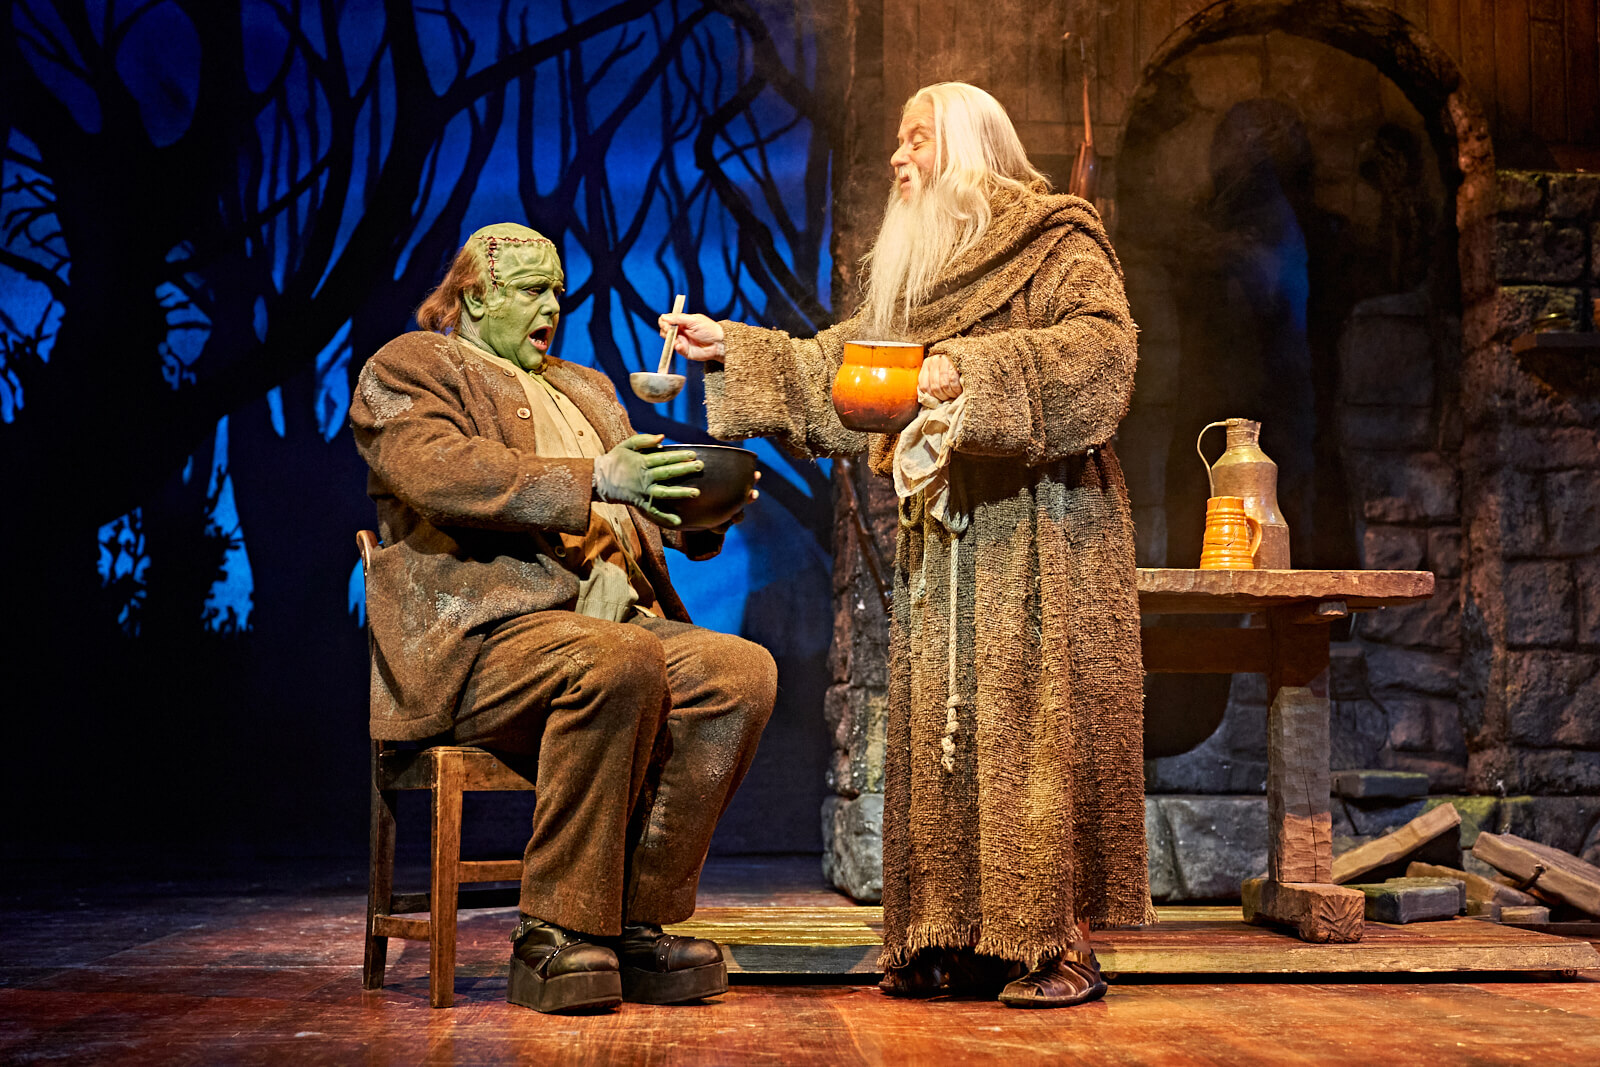 The Hermit (Patrick Clancy) serves his new friend, The Monster, some hot soup.